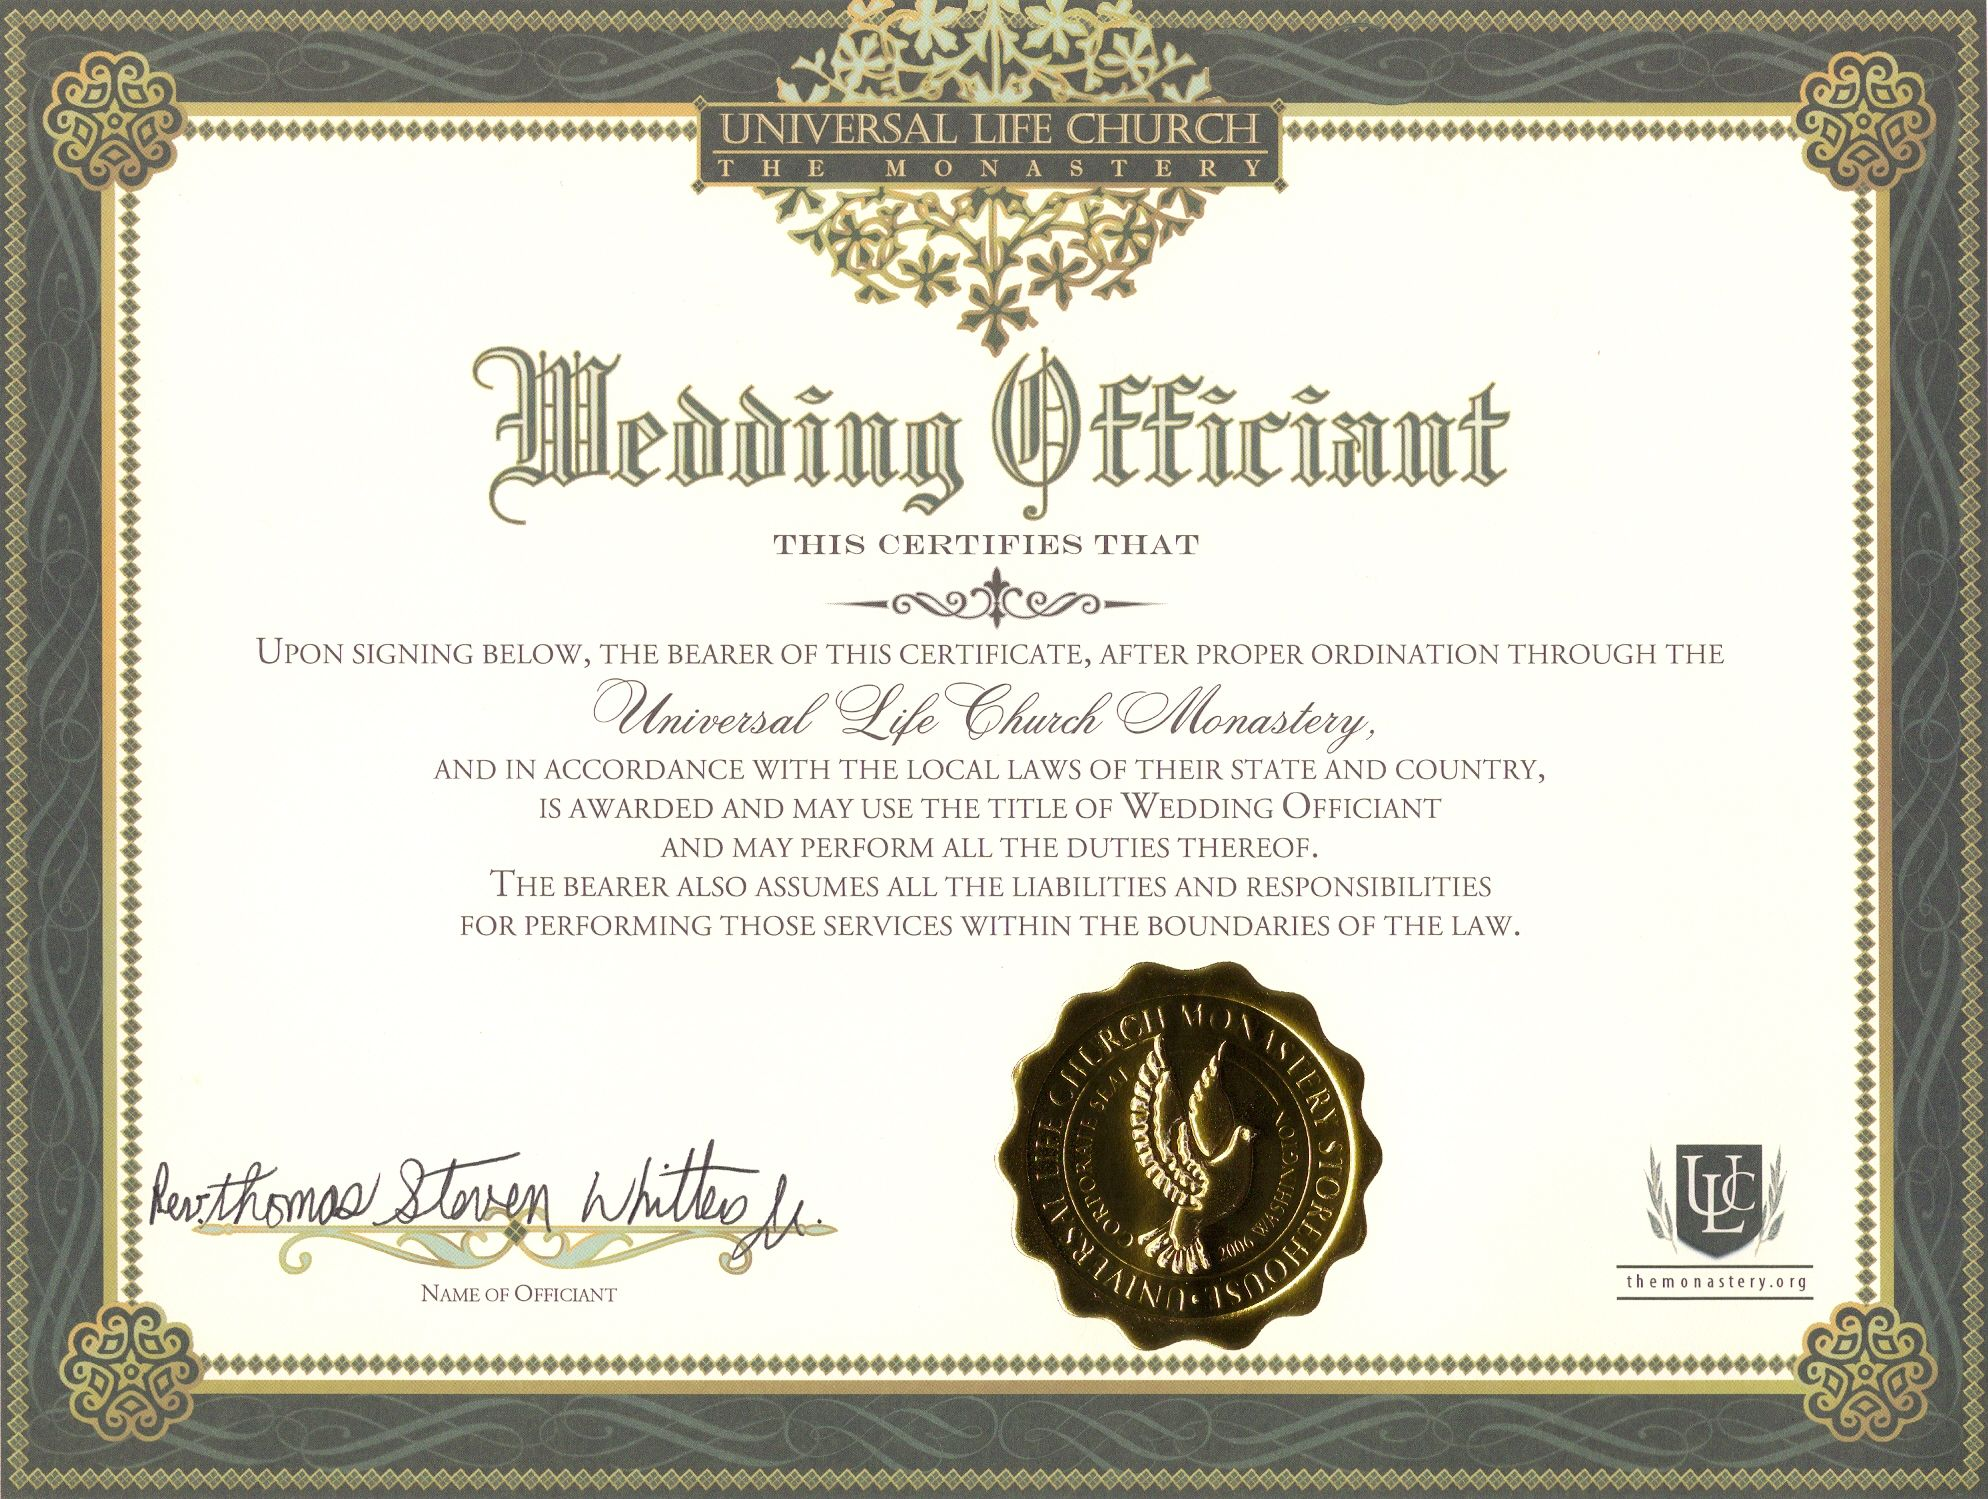 certificate license minister template officiant church universal certificates ministers ohio ceremonies dannybarrantes